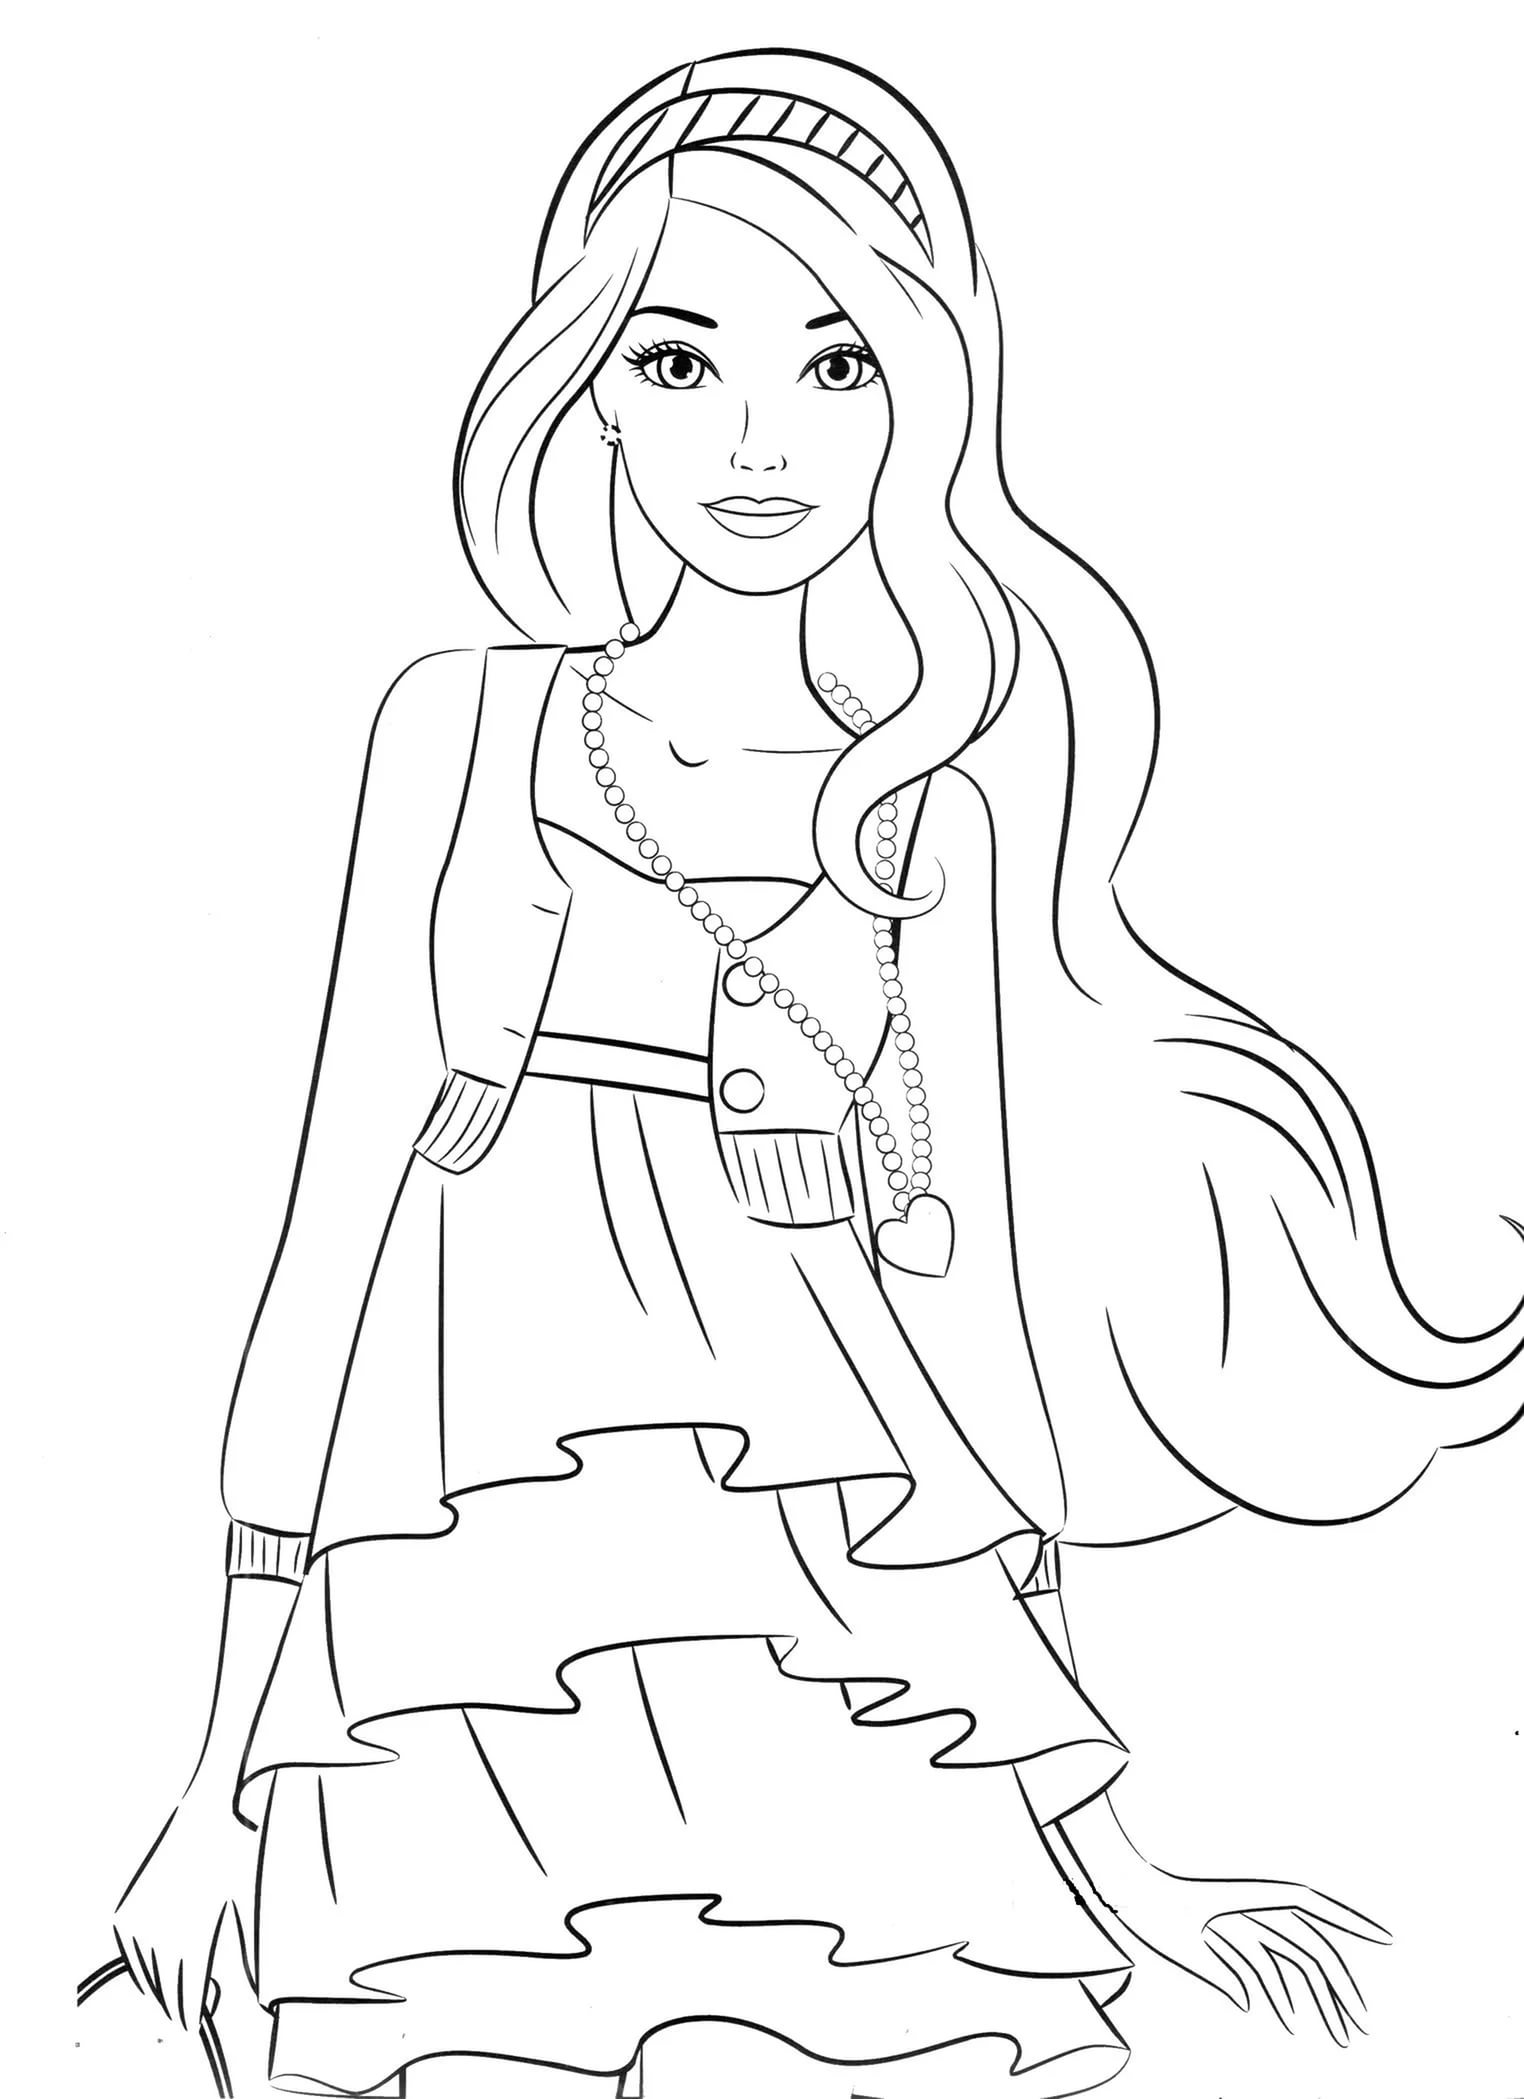 coloring for 4 year olds coloring pages for 4 year olds at getdrawings free download olds year 4 coloring for